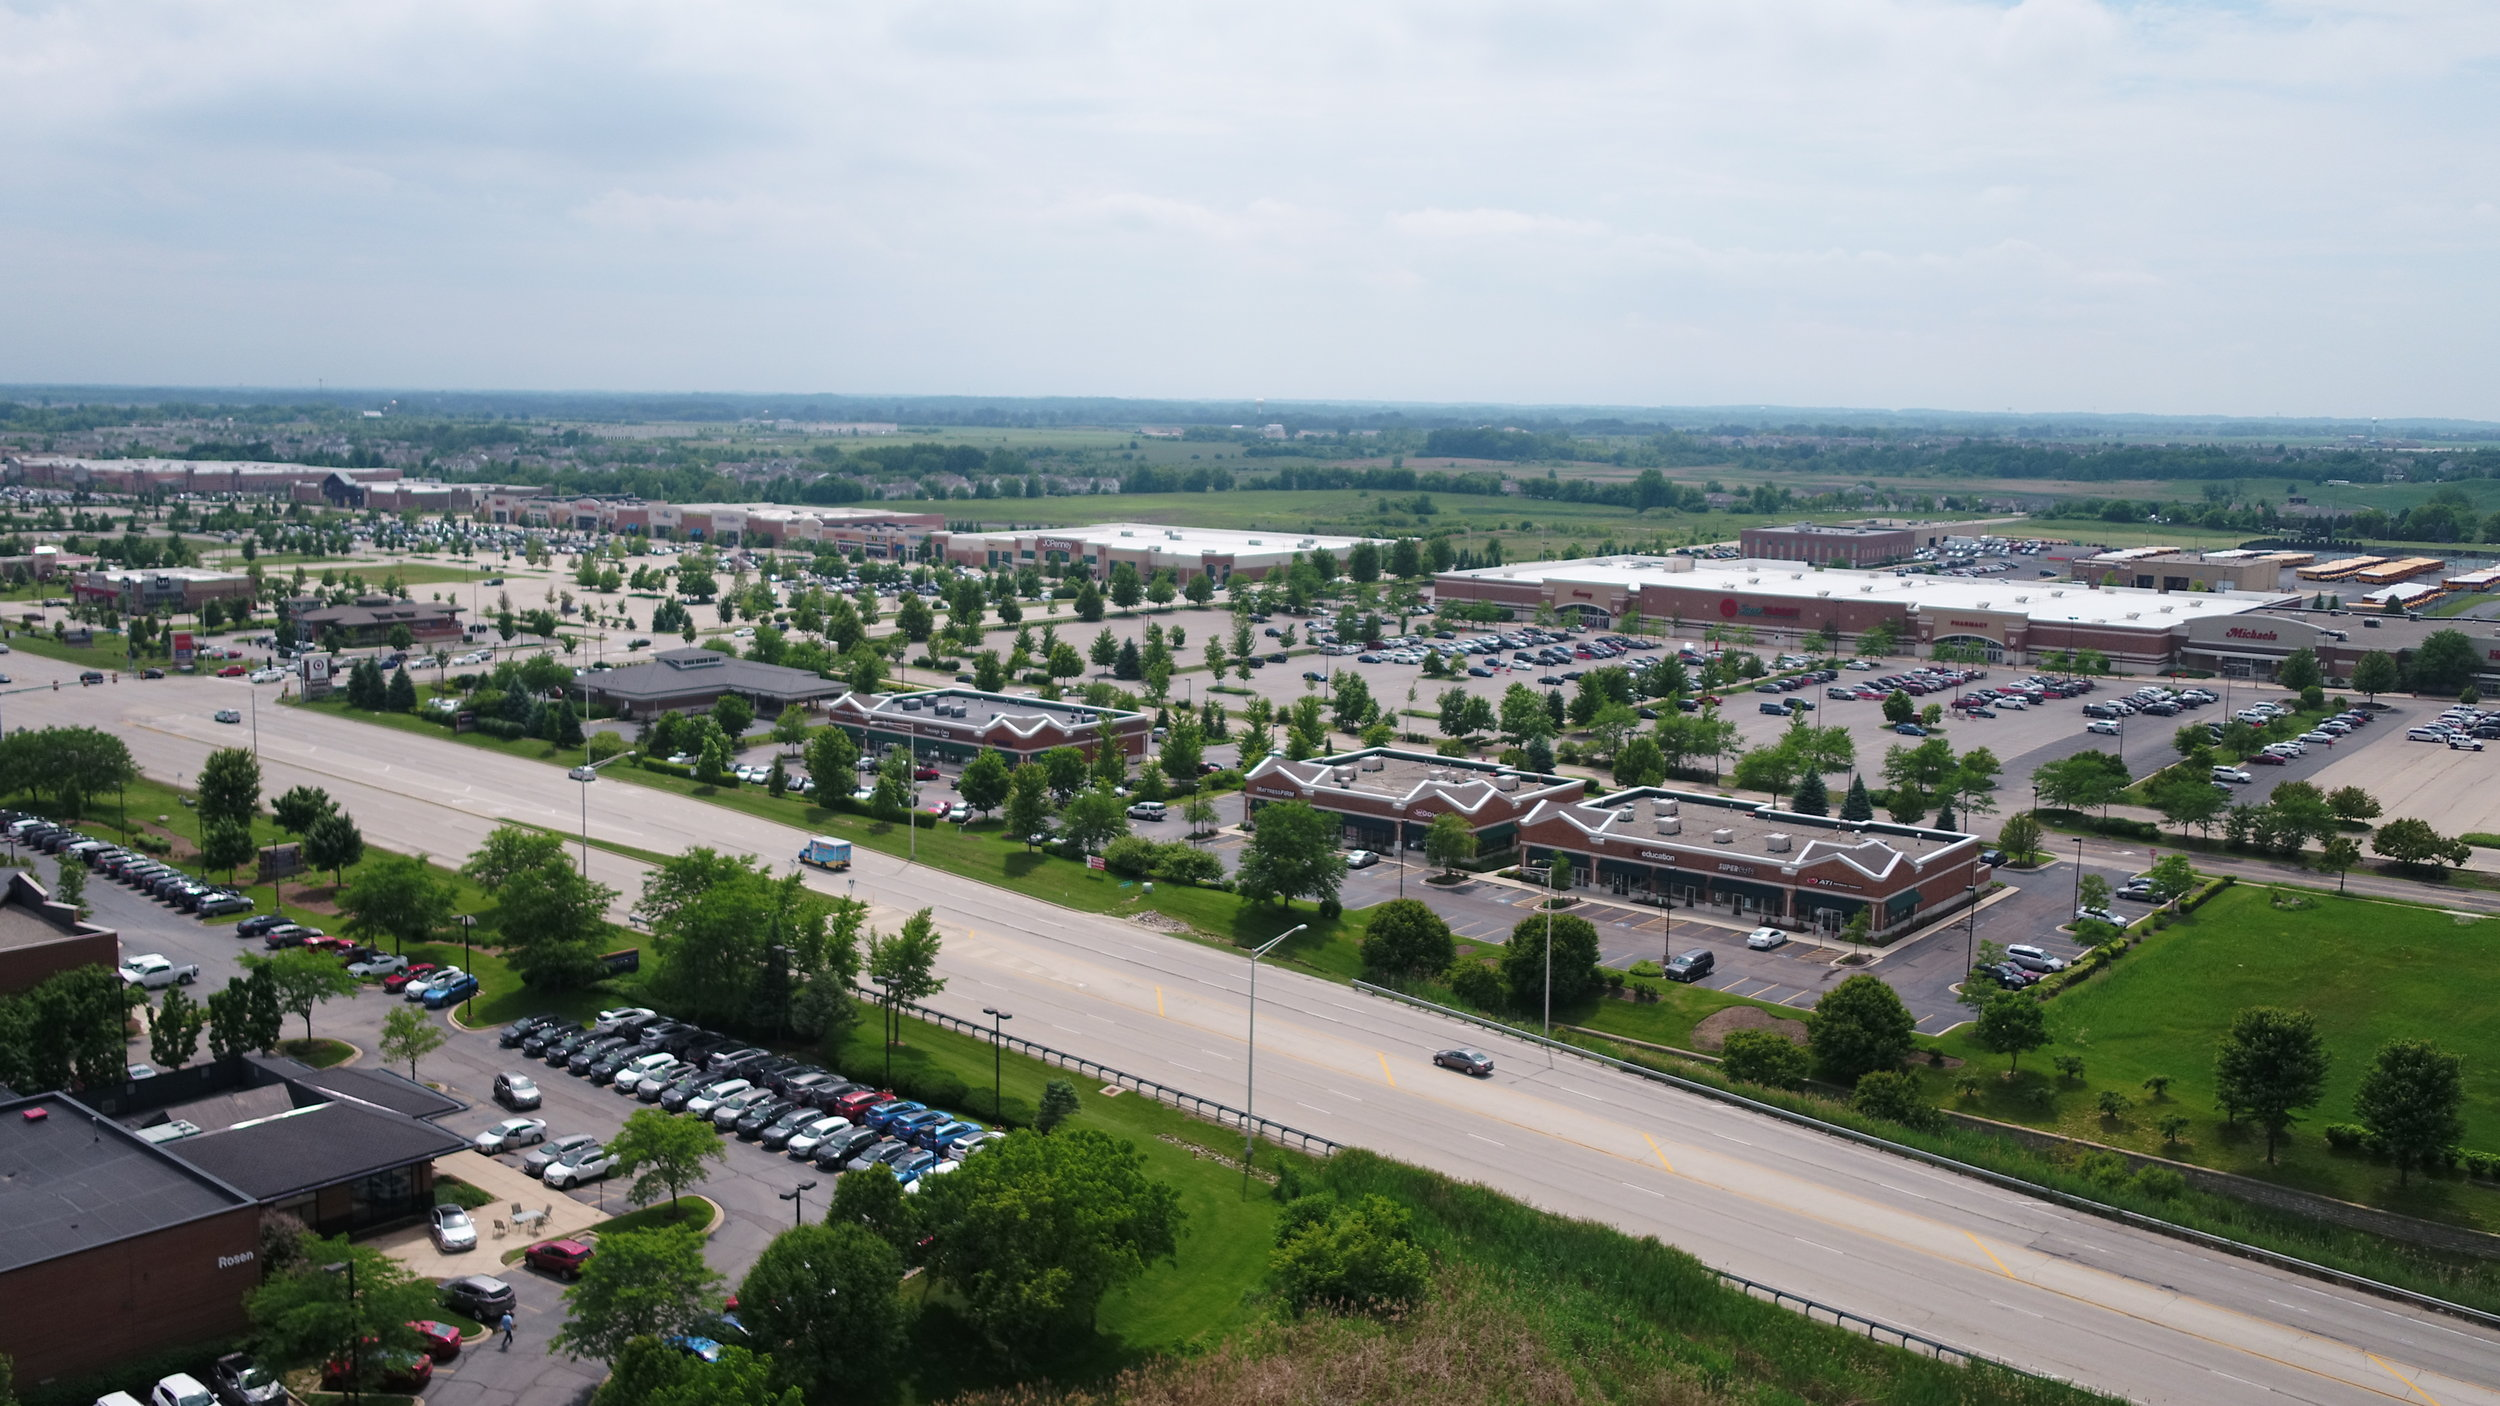 RANDALL ROAD RETAIL CORRIDOR - Known as the premier shopping district in the Northwest suburbs, the Randall Road Corridor provides visitors and residents with high-quality retail experiences thanks to its consistent growth and high traffic count.